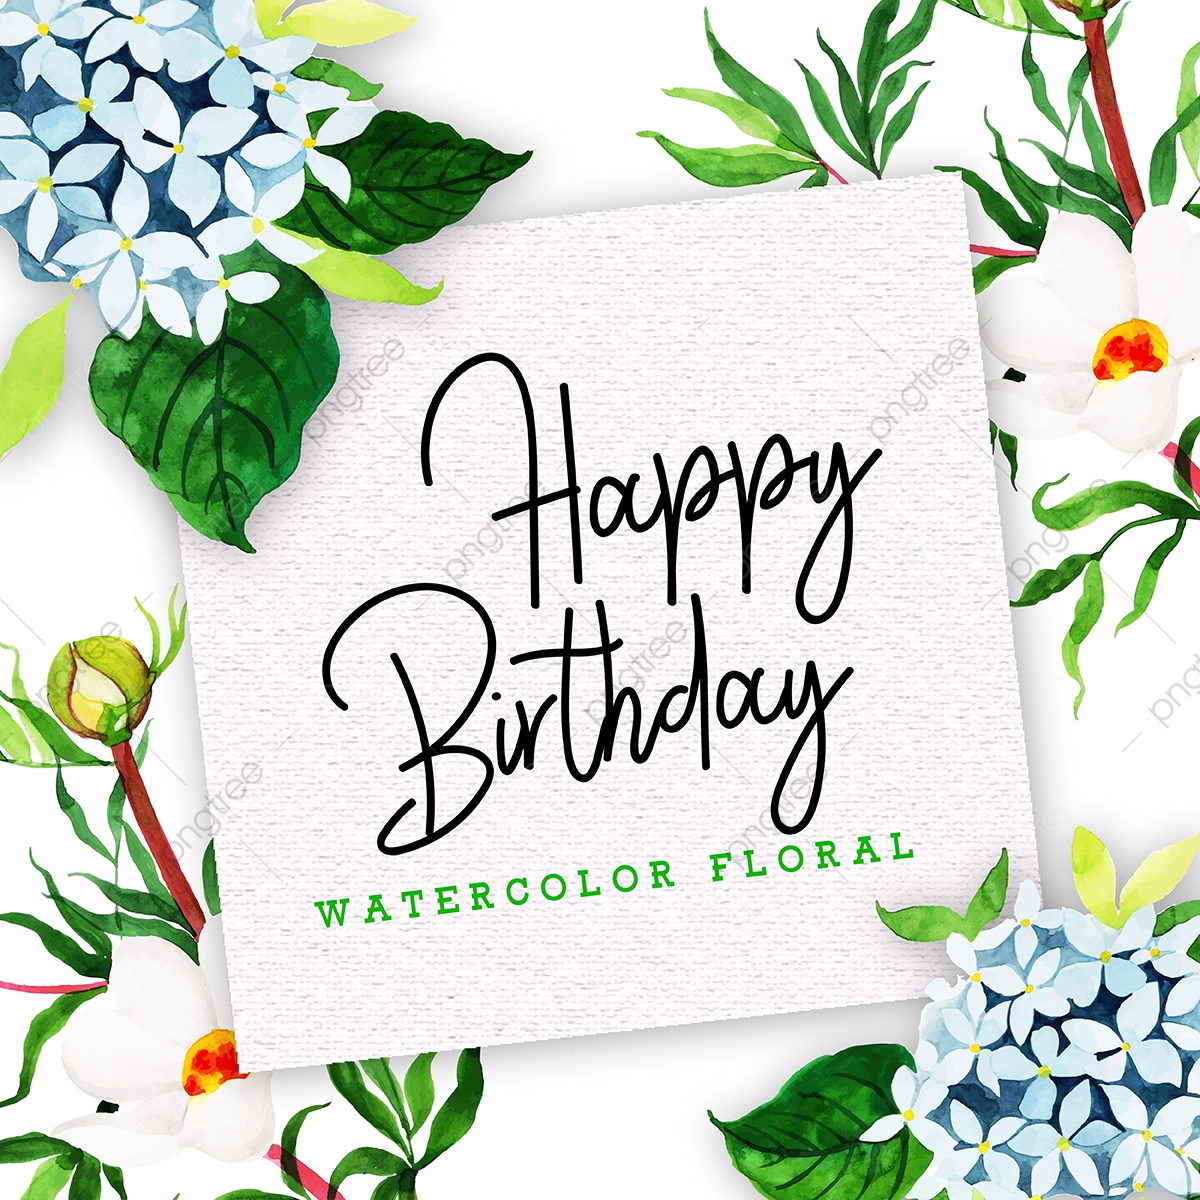 Happy Birthday Card With Floral In Watercolor Style Watercolor Floral Birthday Decoration Beautiful Floral Birthday Decoration Happy Birthday Clip Art Png And Vector With Transparent Background For Free Download